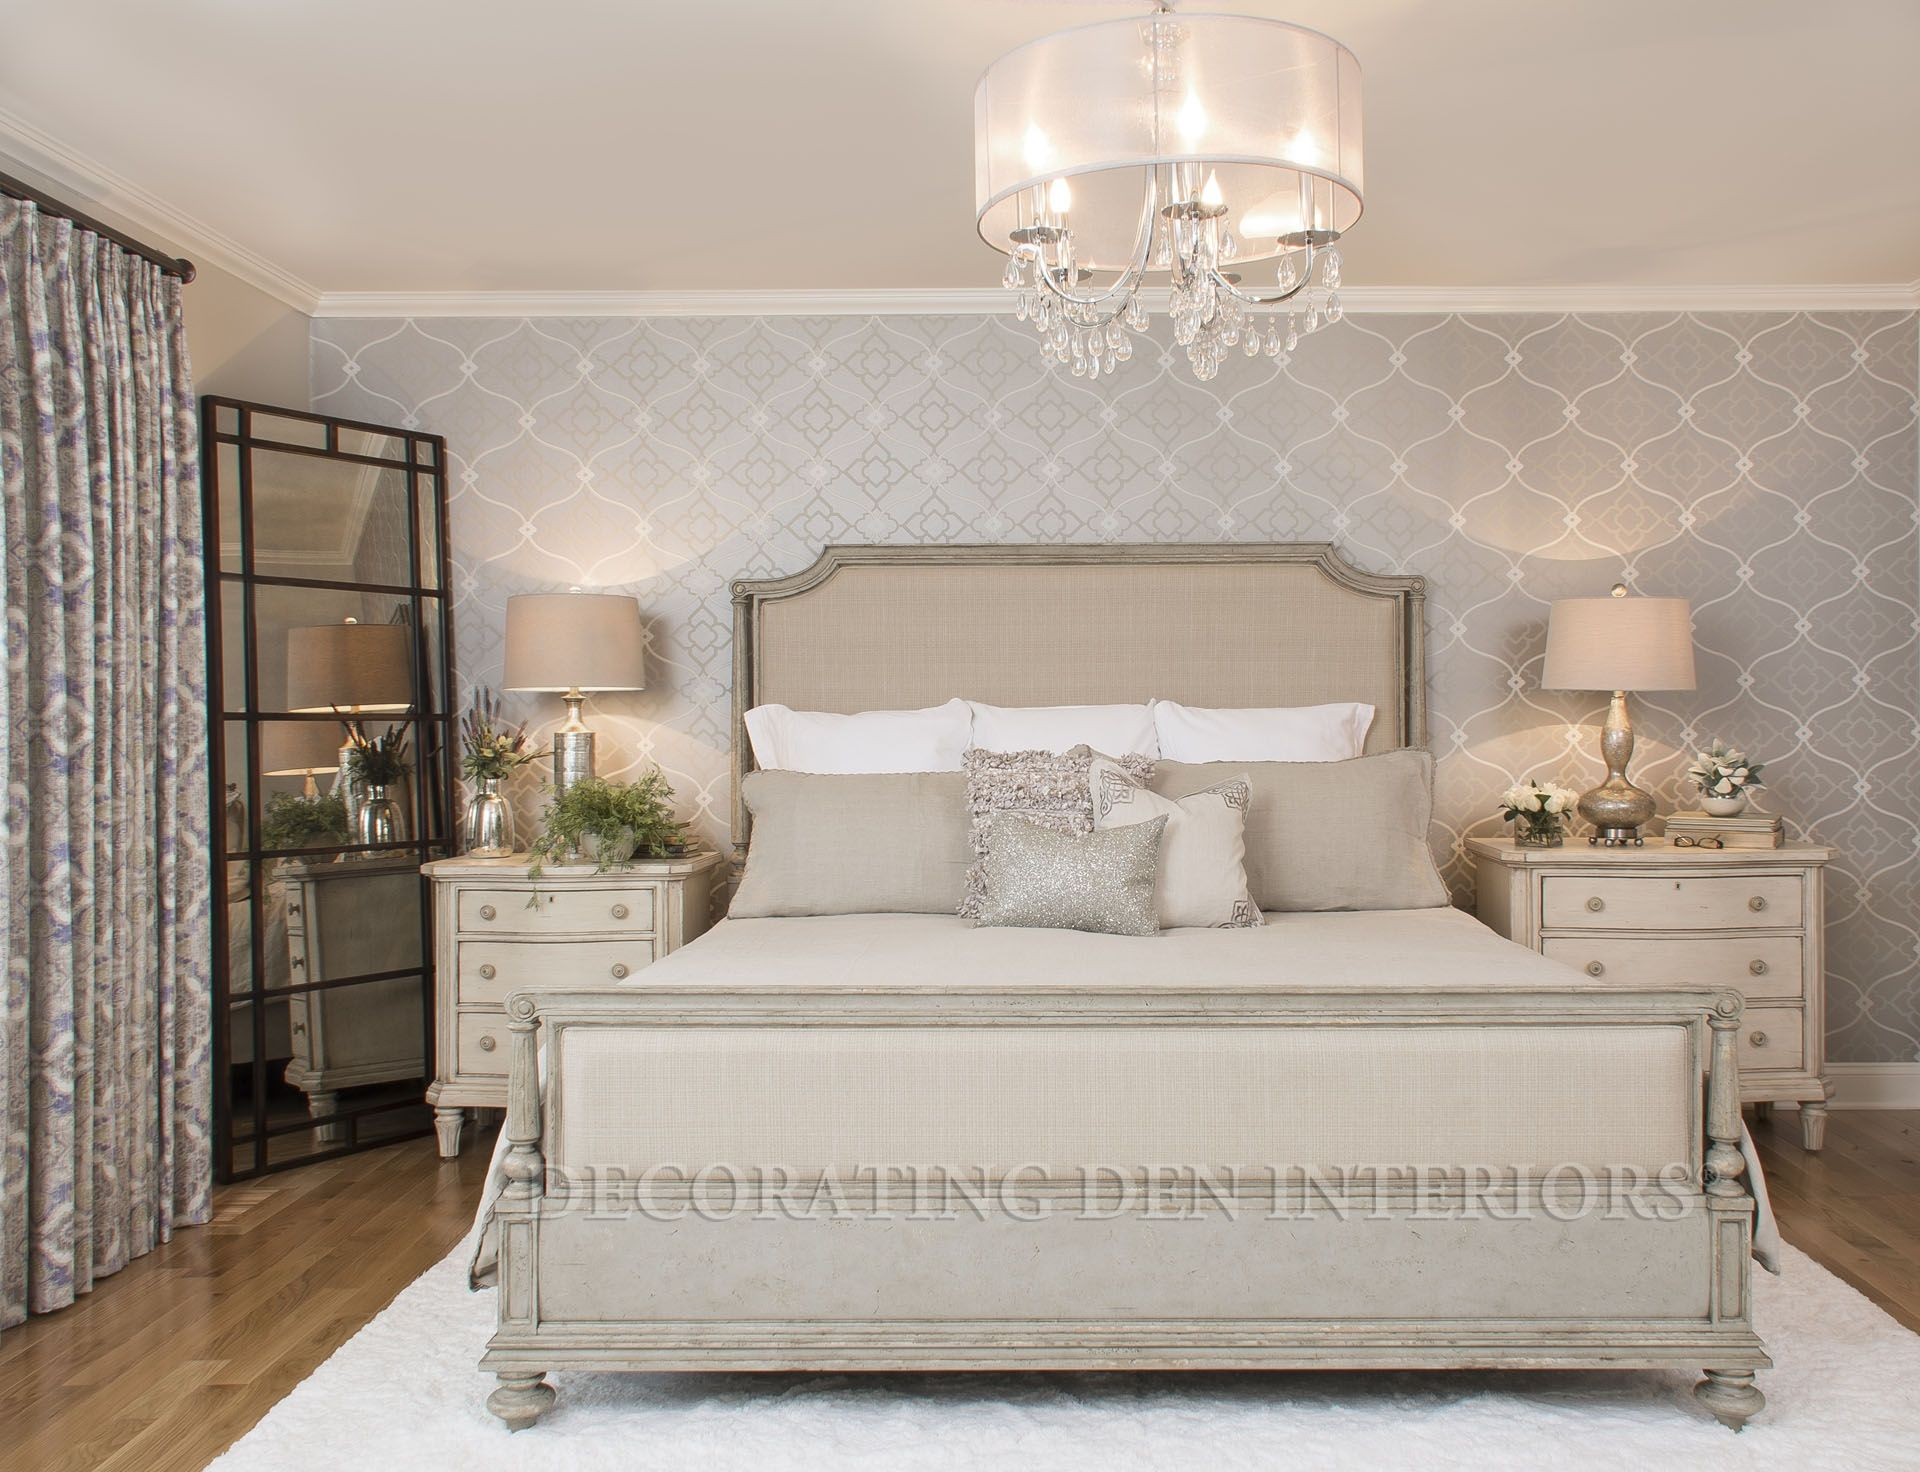 www.decoratingden.com | Bedrooms 2016 in 2019 | Bedroom ...